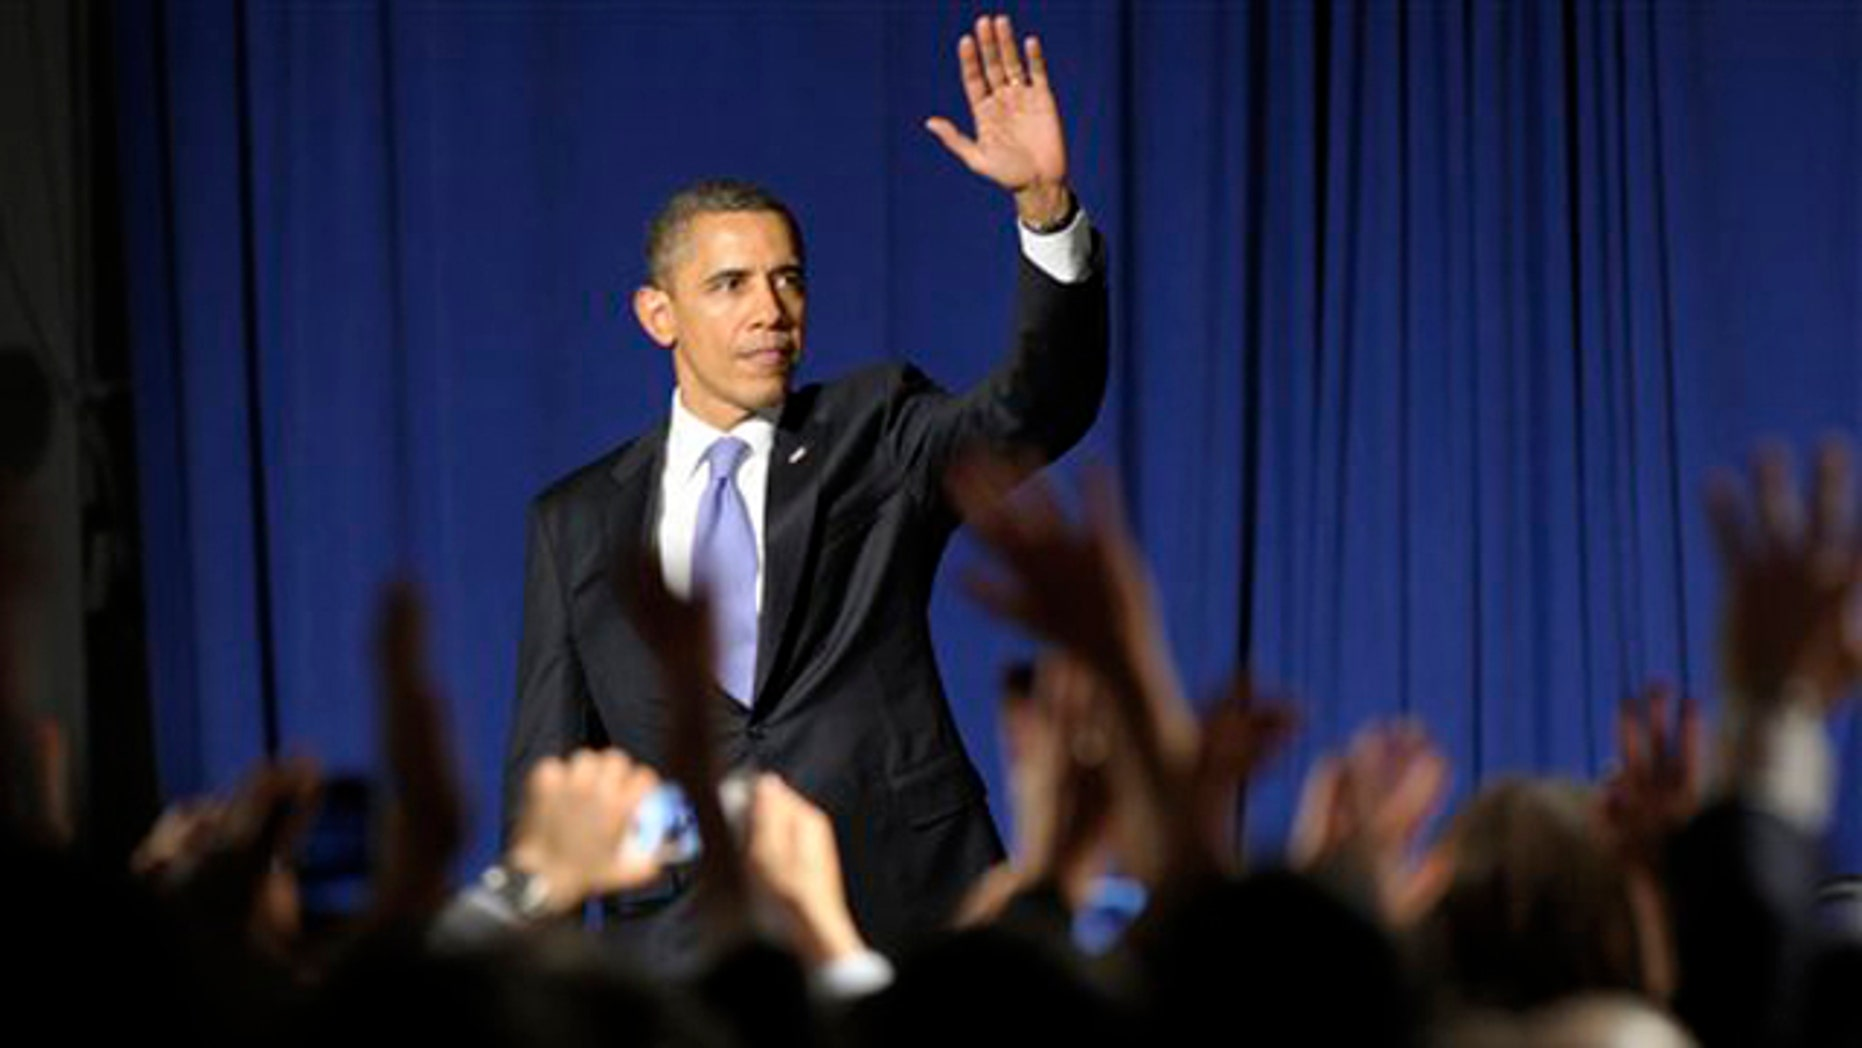 March 1, 2012: President Obama waves to the crowd after speaking at a fundraiser in New York City.